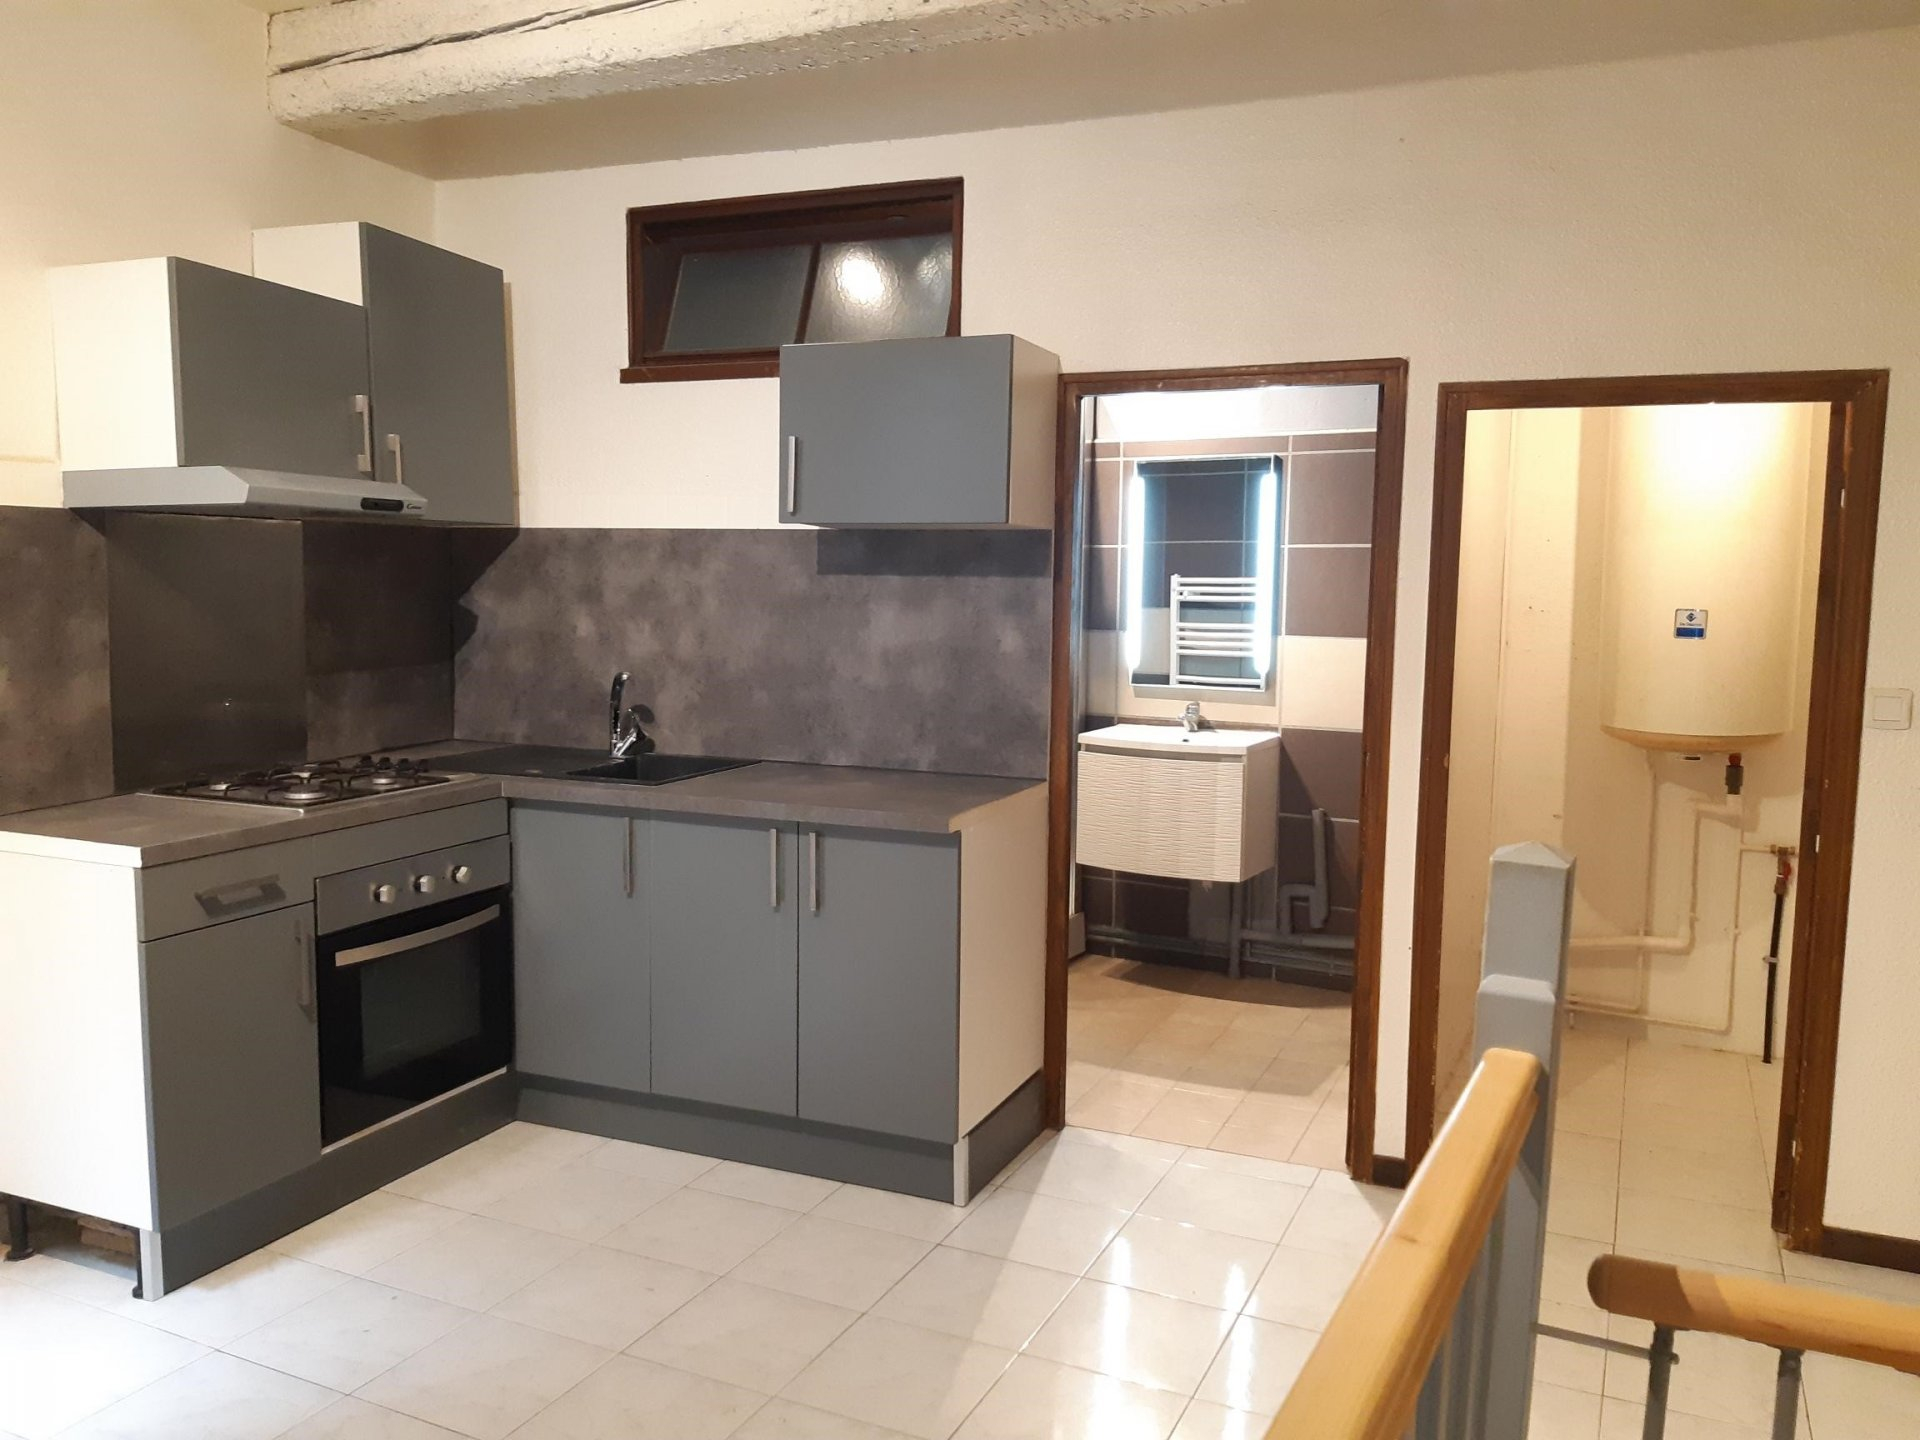 Location Appartement TARASCON Mandat : 0790